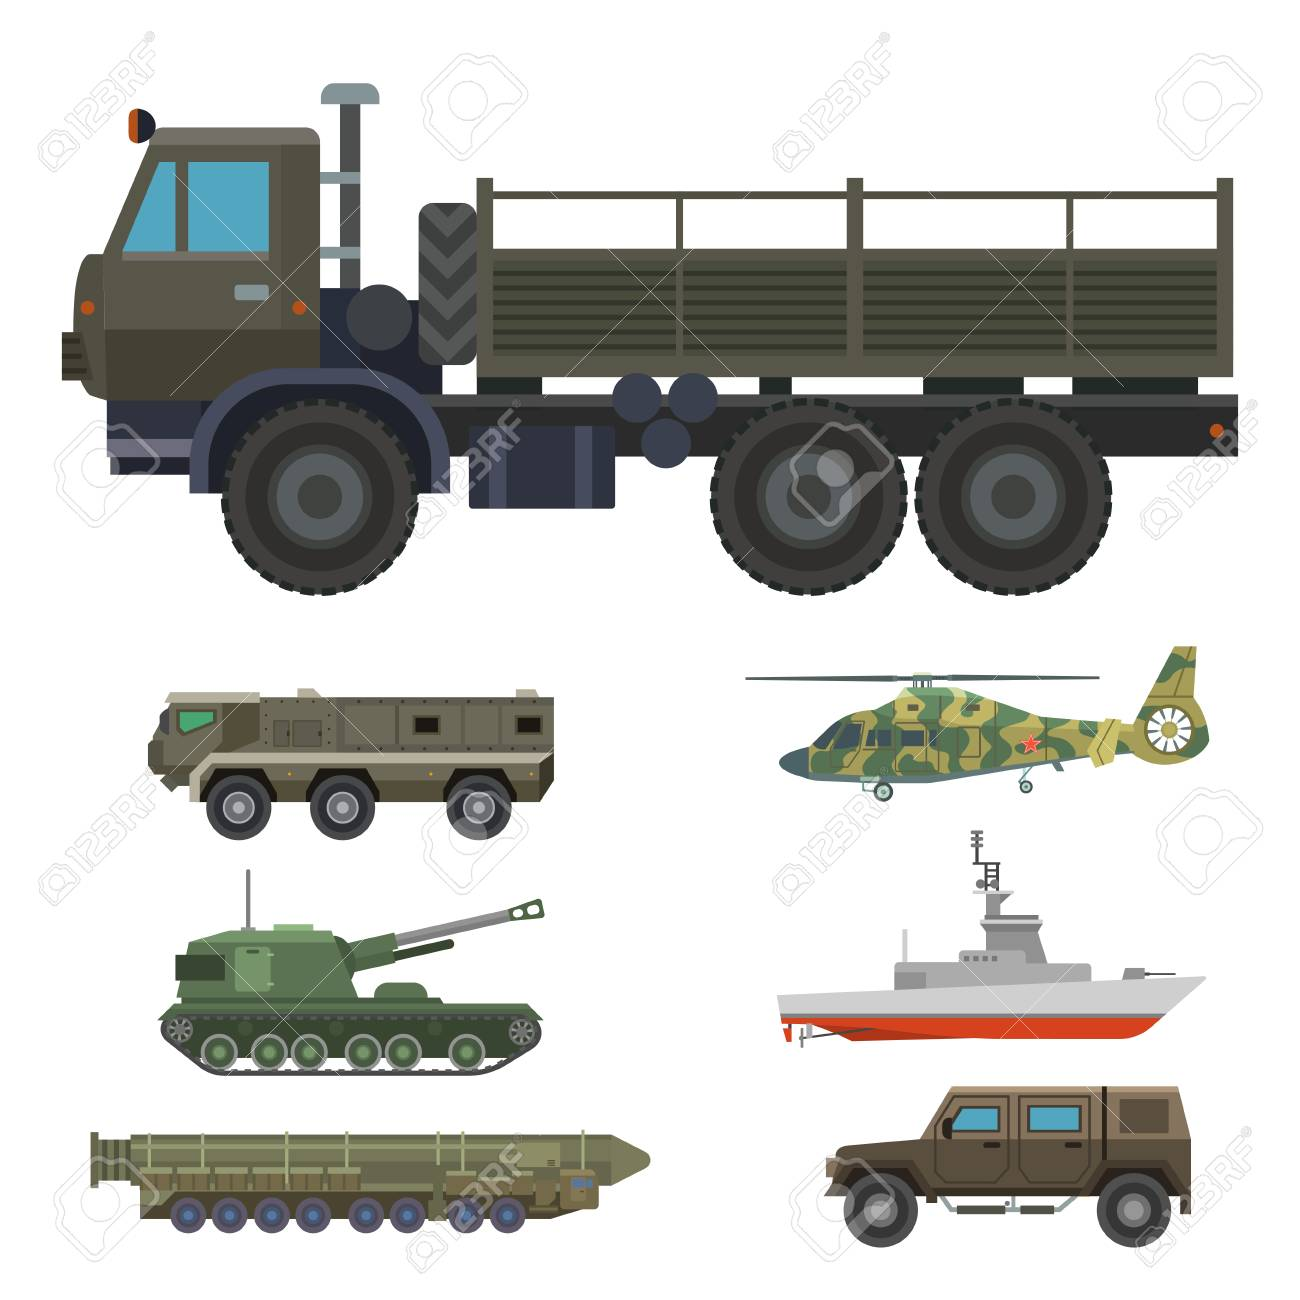 Military transport vector vehicle technic army war tanks and industry armor defense transportation weapon illustration. - 102724288